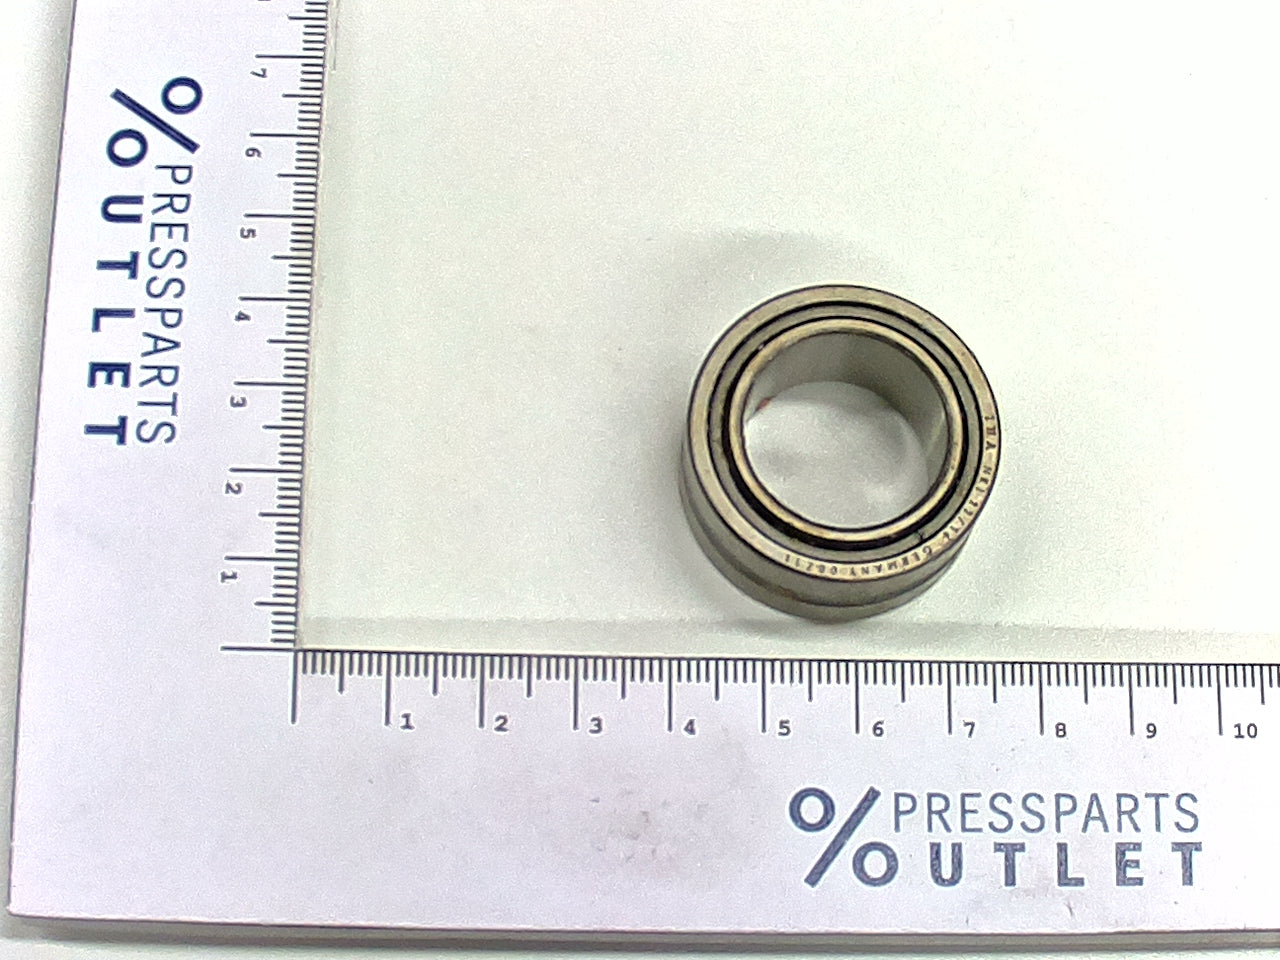 Needle bearing  NKI 22/16-IS1 - 00.550.0151/ - Nadellager  NKI 22/16-IS1